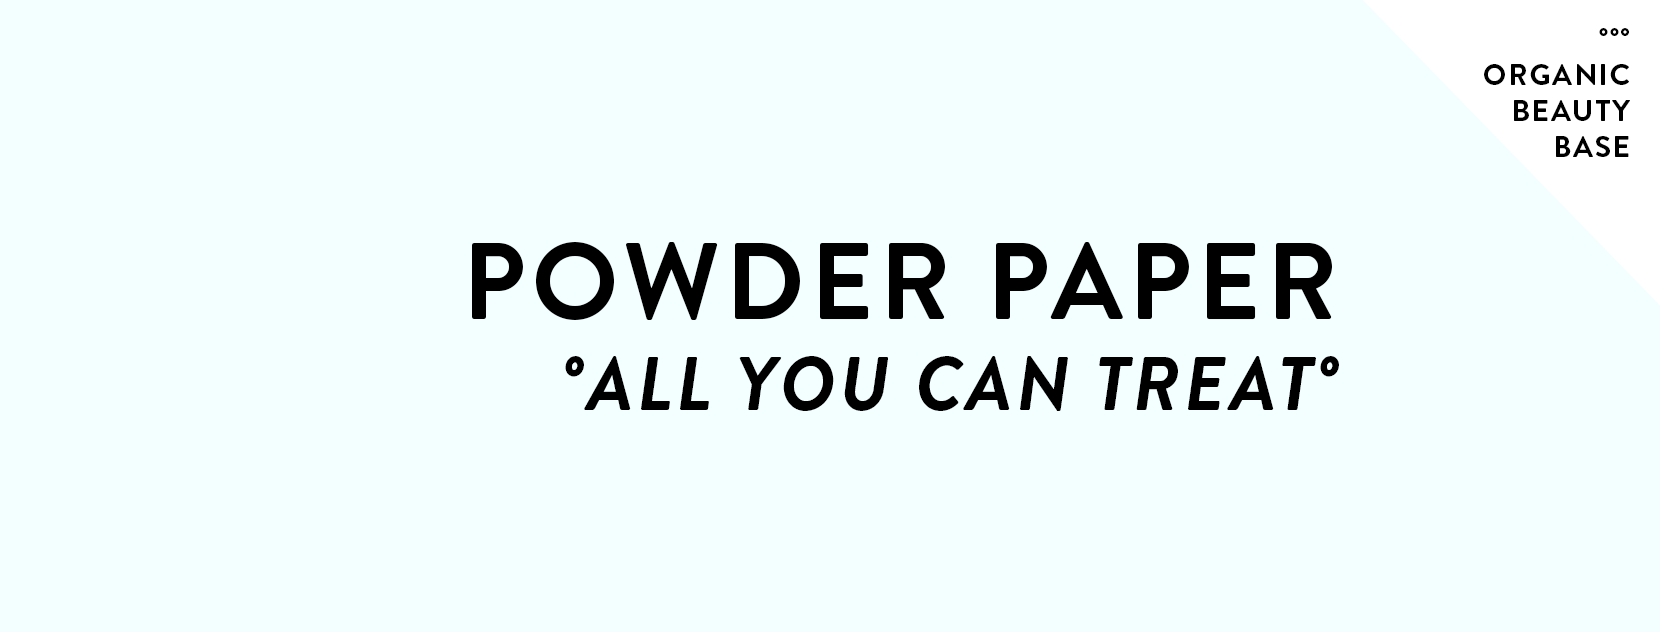 powder-paper-all-you-can-treat